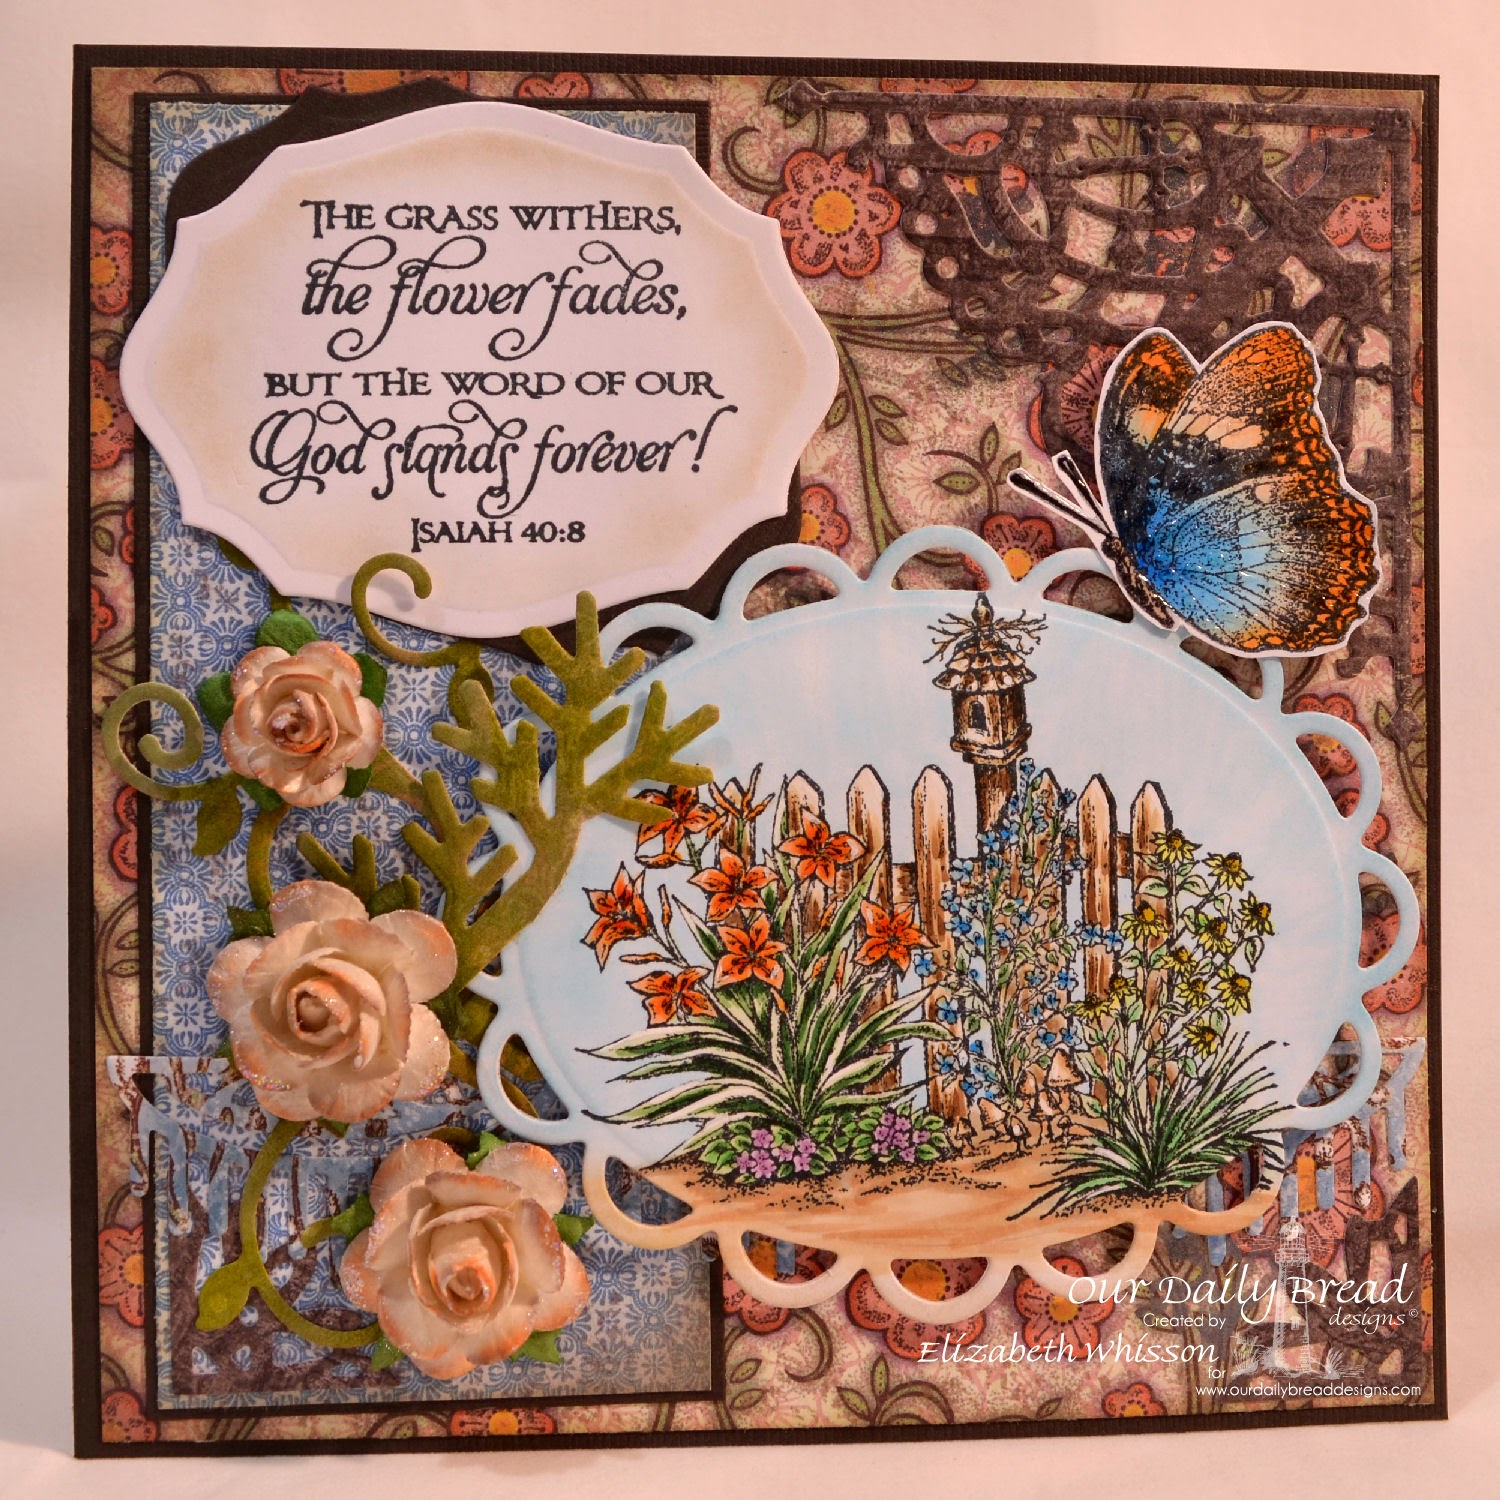 Elizabeth Whisson, Our Daily Bread Designs, Missing You, Don't Worry, Scripture Series 1, ODBD Beautiful Borders Dies, ODBD Fancy Foliage Dies, ODBD Elegant Ovals Dies, ODBD Decorative Corners Dies, ODBD Ornate Borders and Flowers Dies, ODBD Blooming Garden Paper Collection